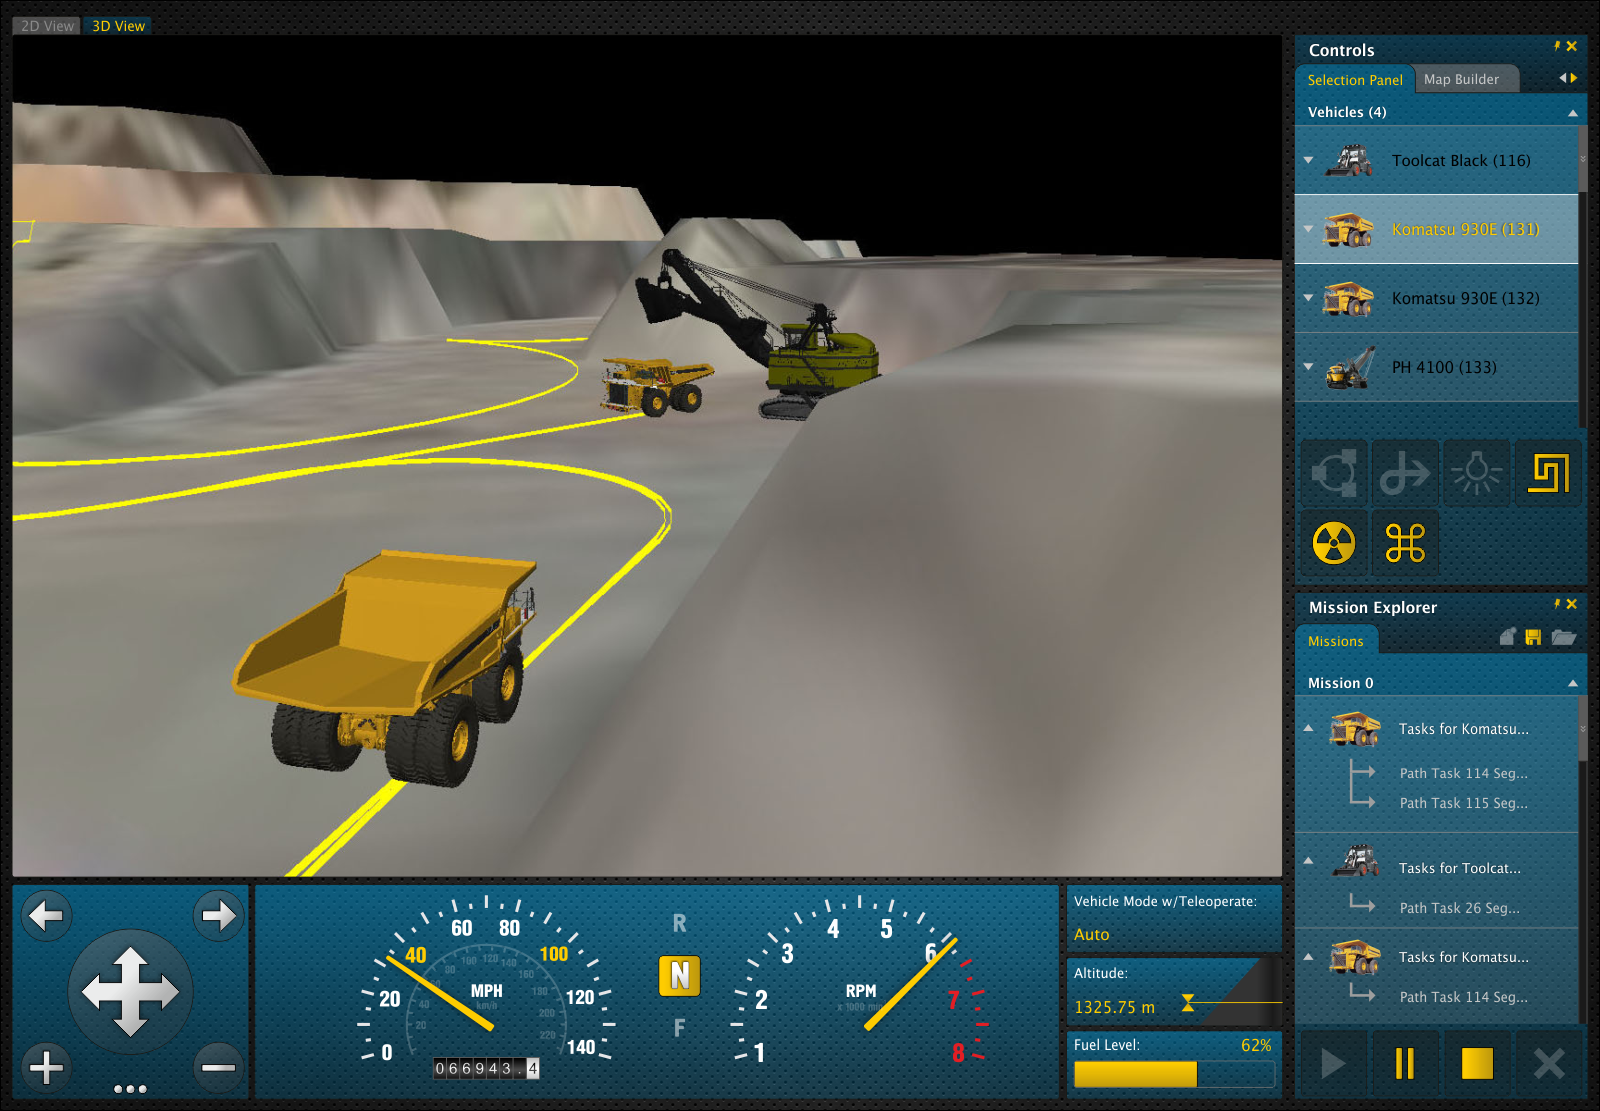 New design wanted for Unmanned Vehicle Systems Control Dashboard